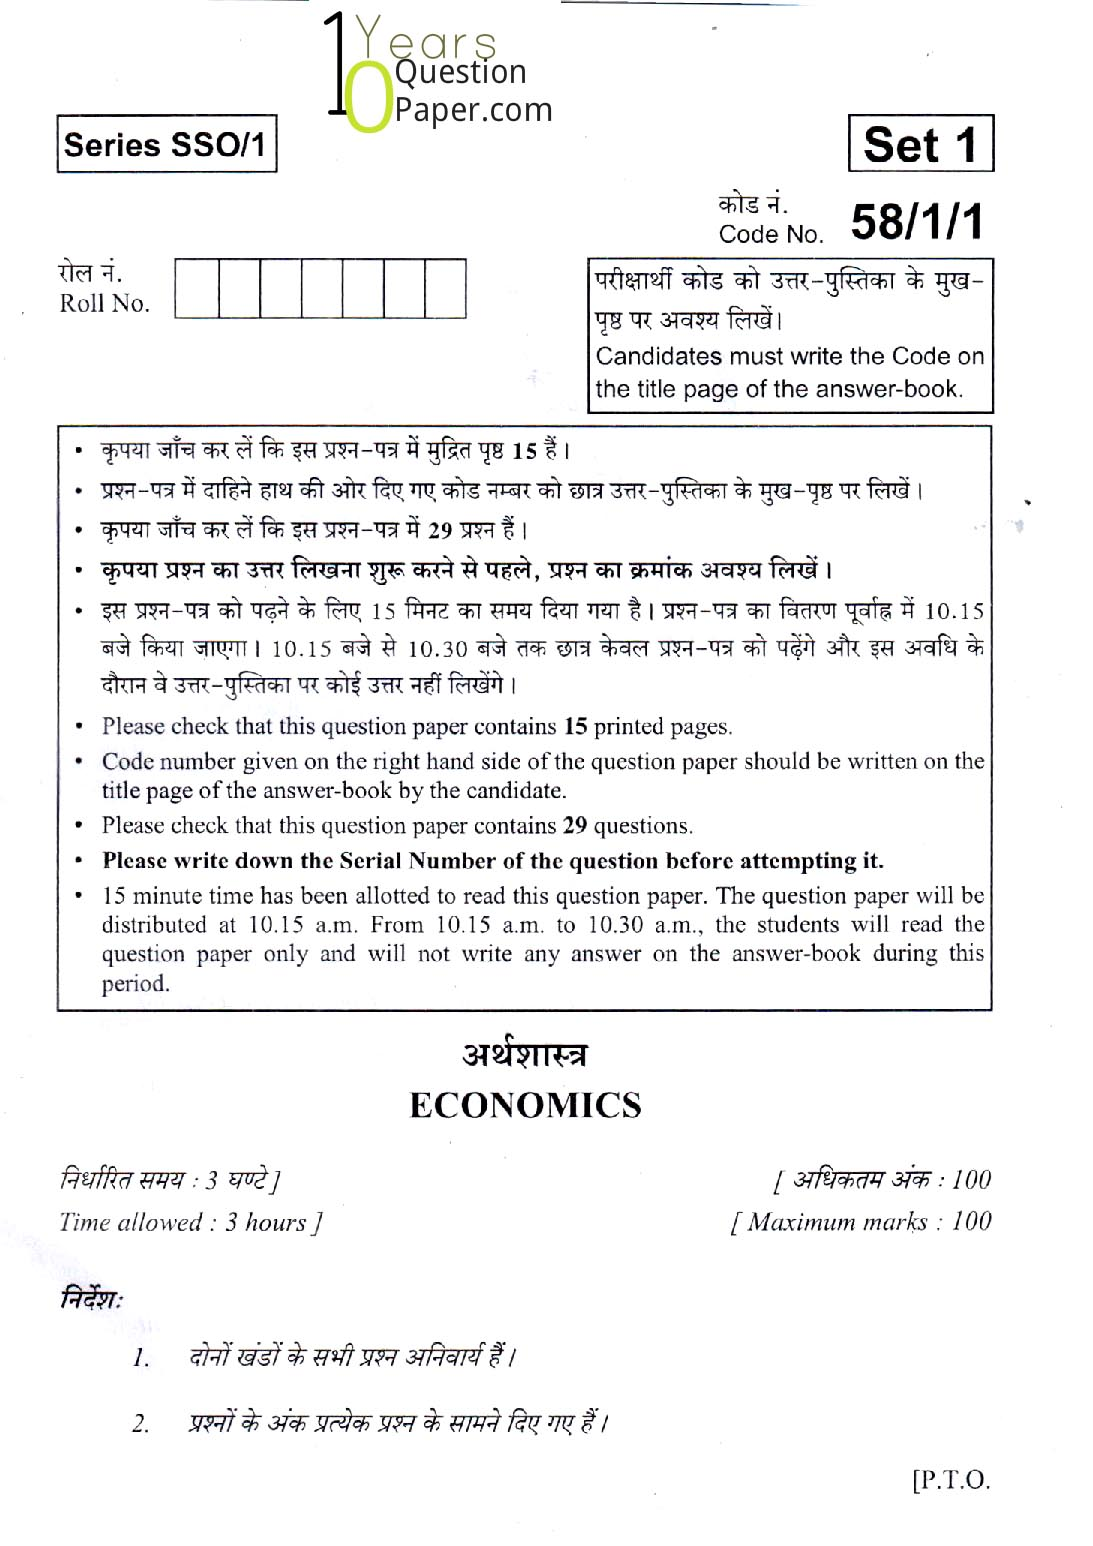 Cbse sample papers for class 12 economics outside delhi 2016.